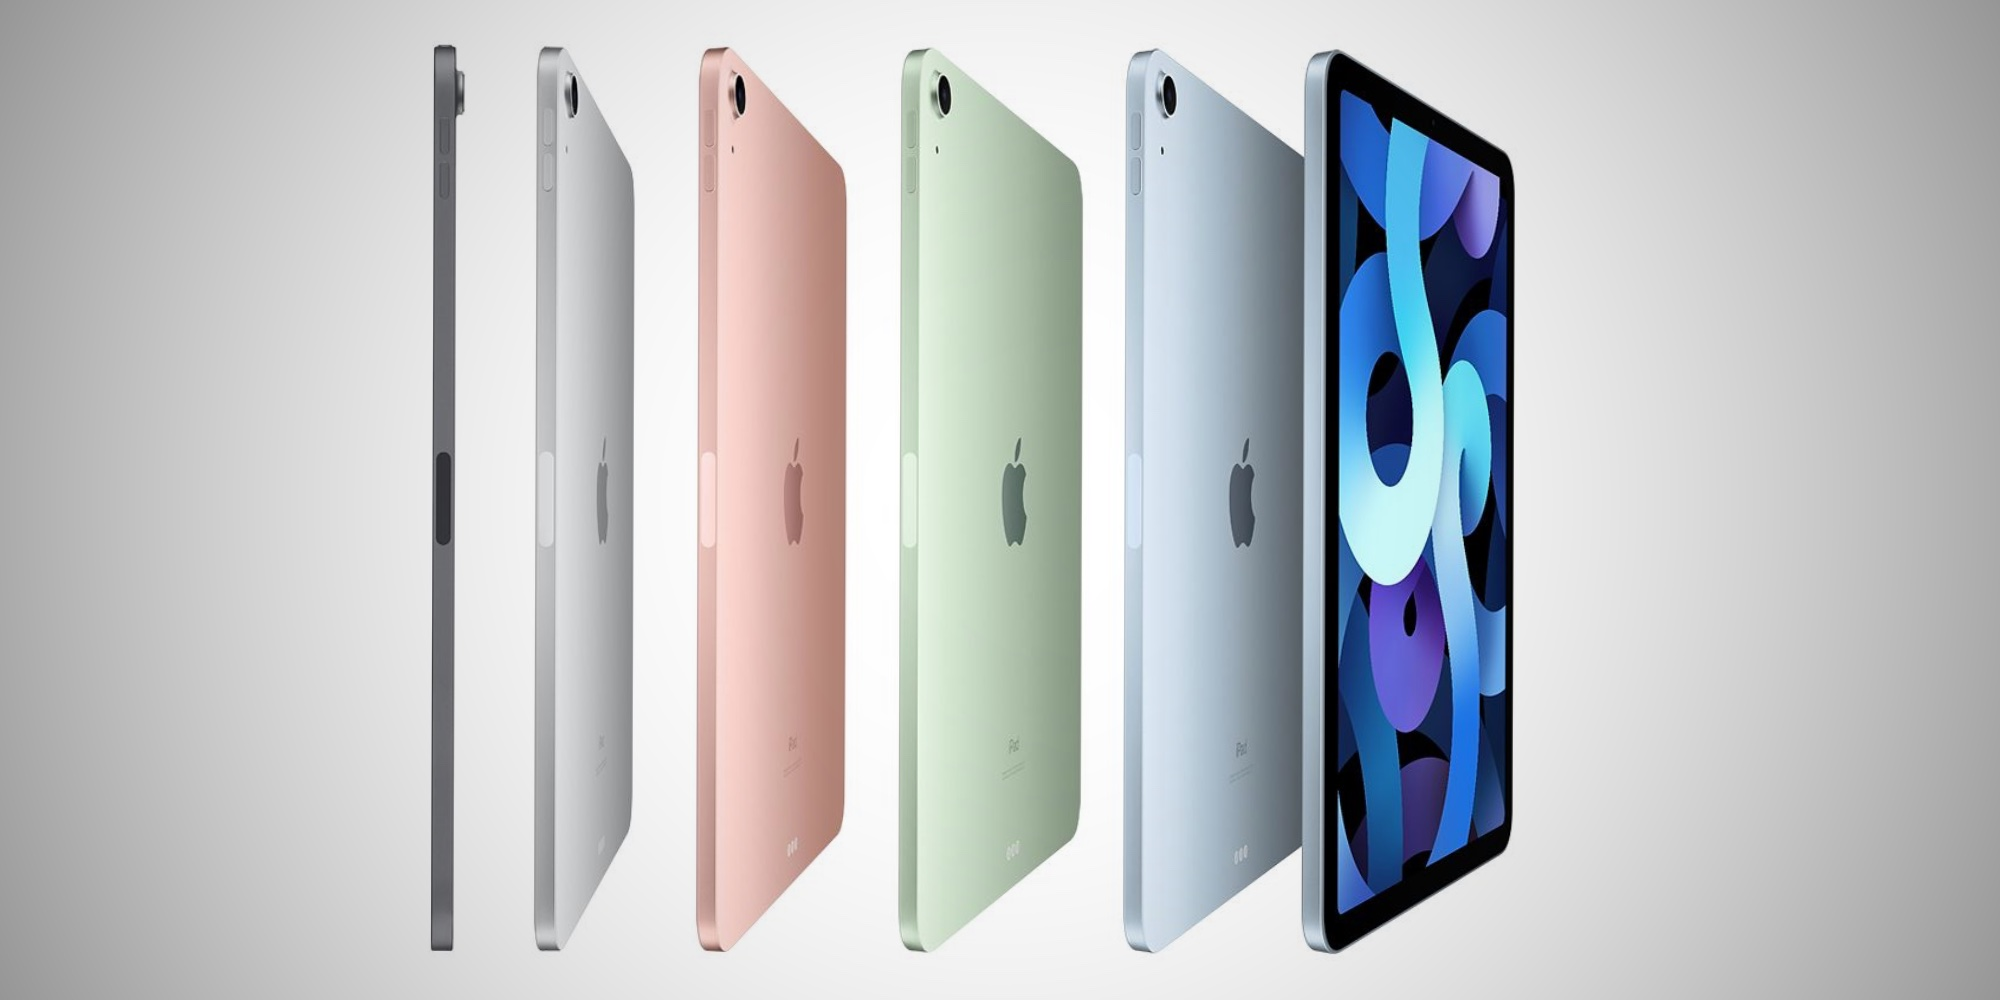 Couleurs de l'iPad Air